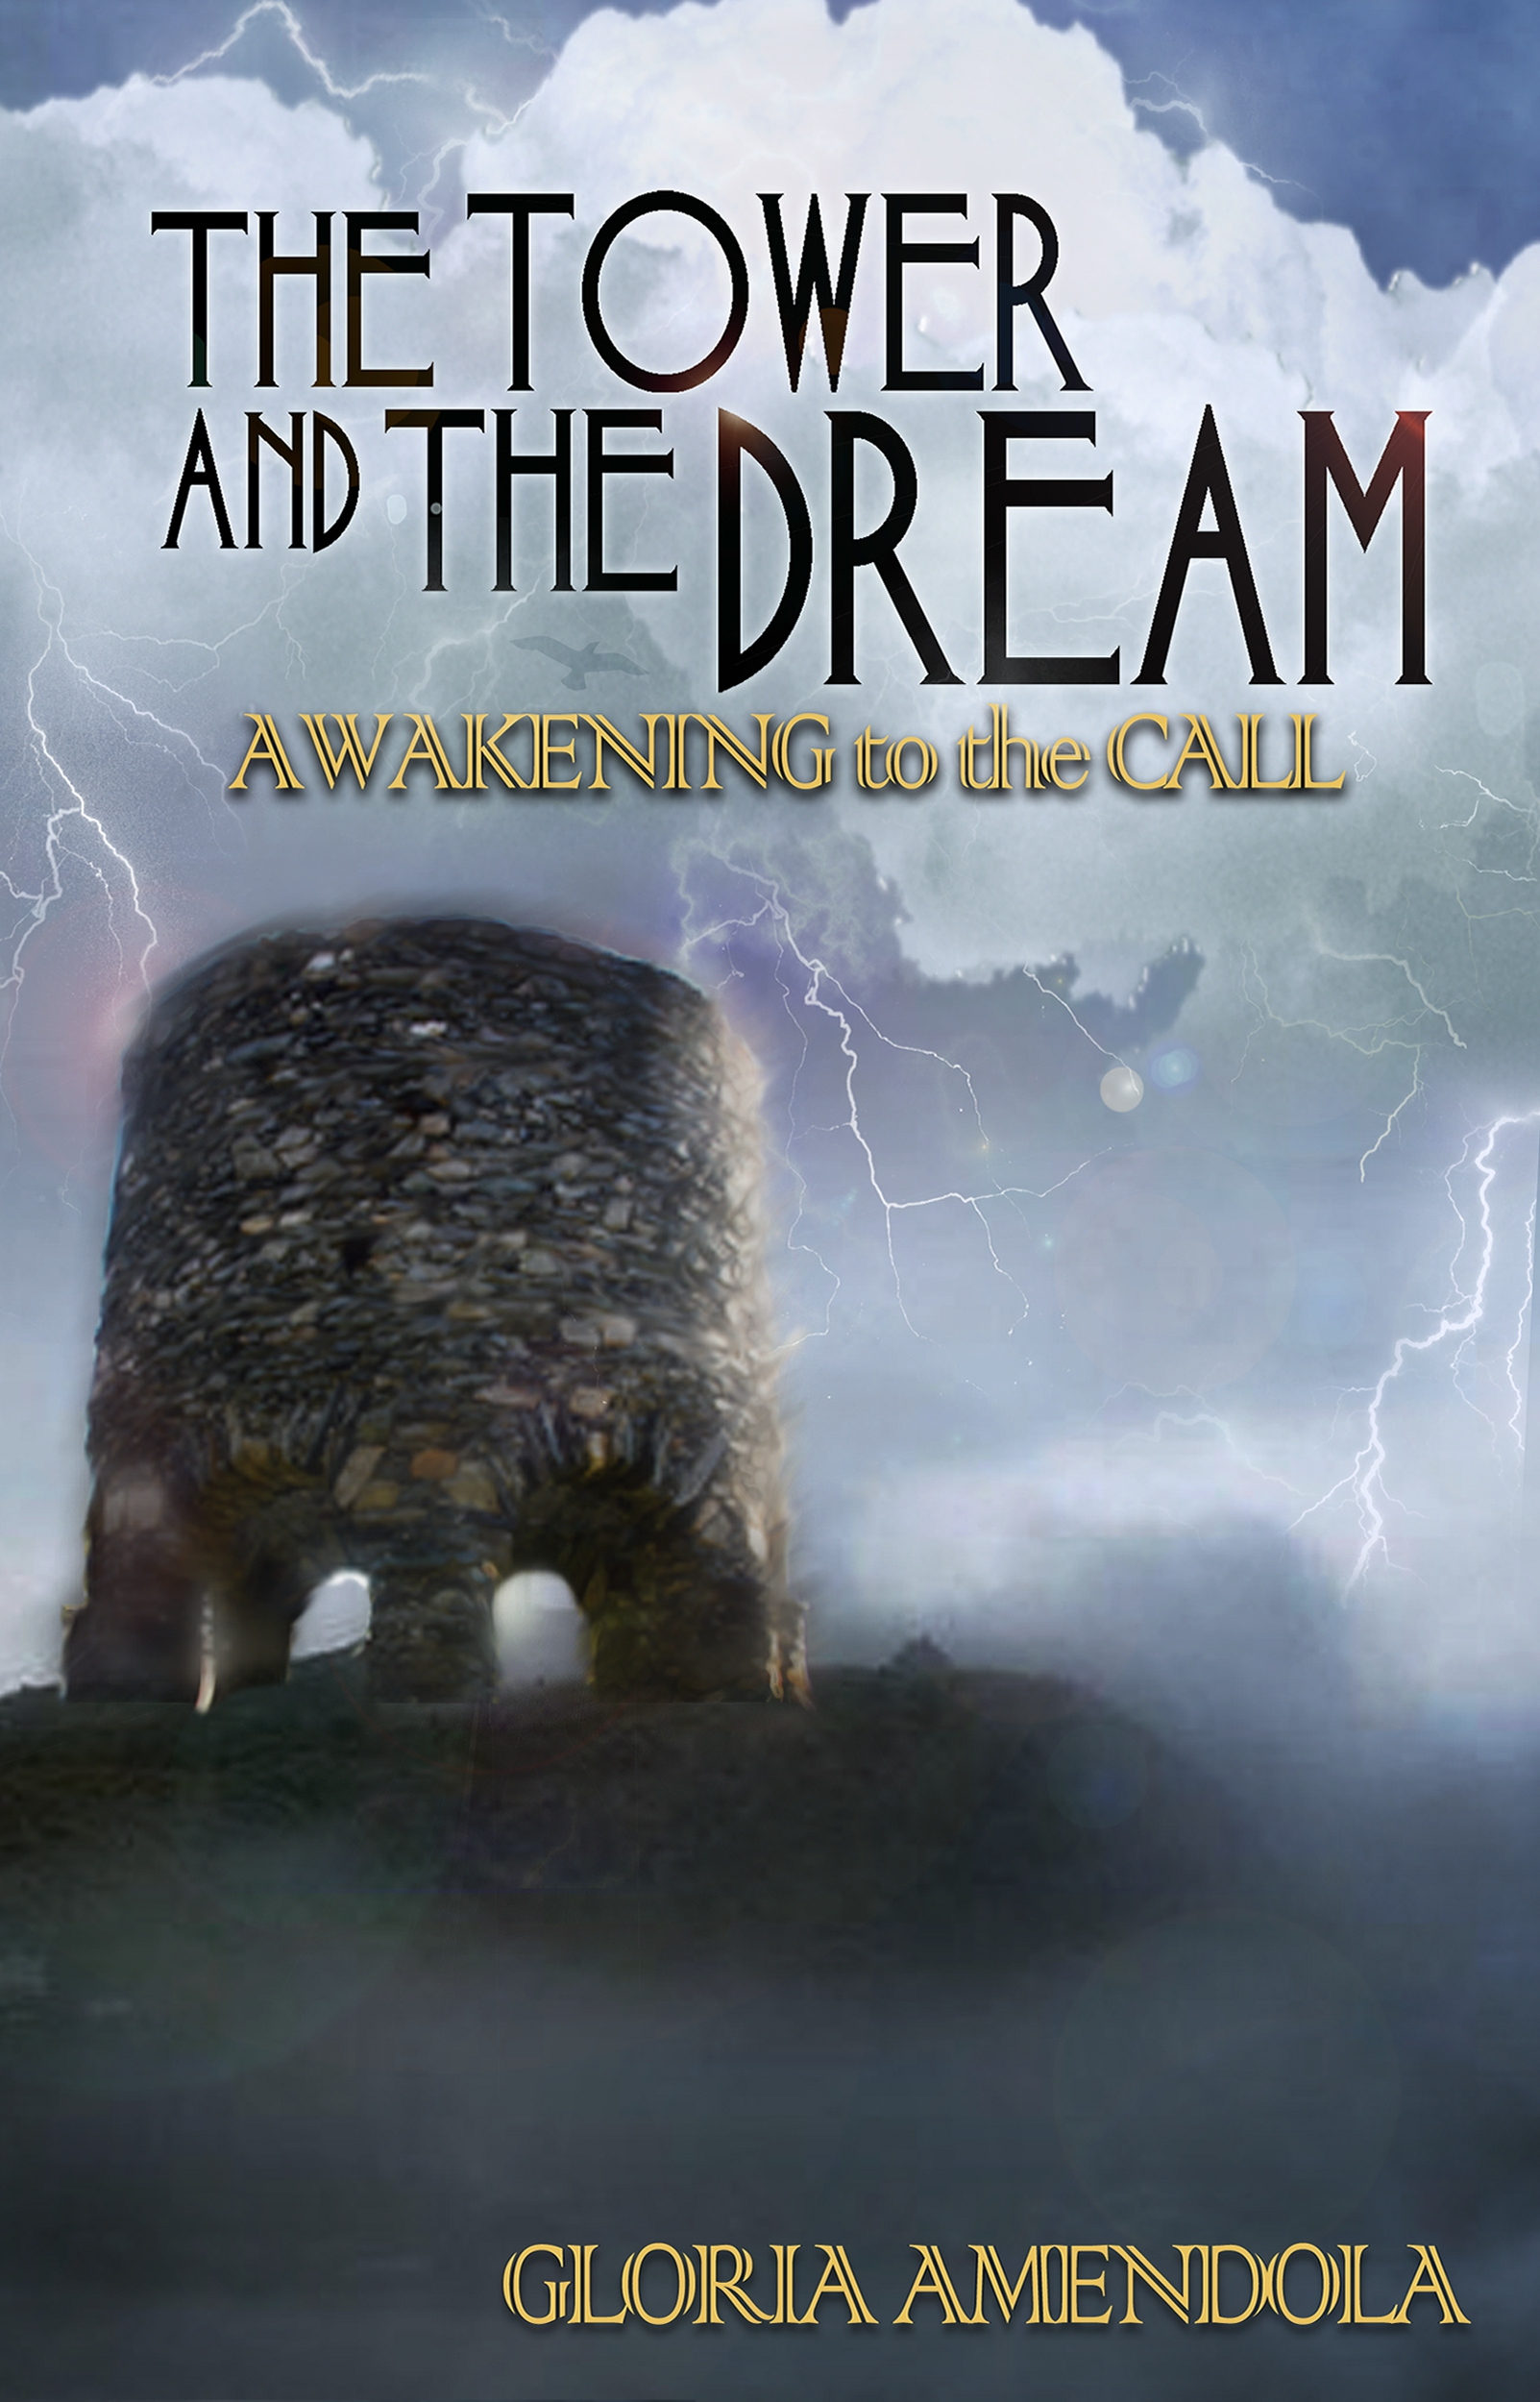 The Tower and the Dream: Awakening to the Call